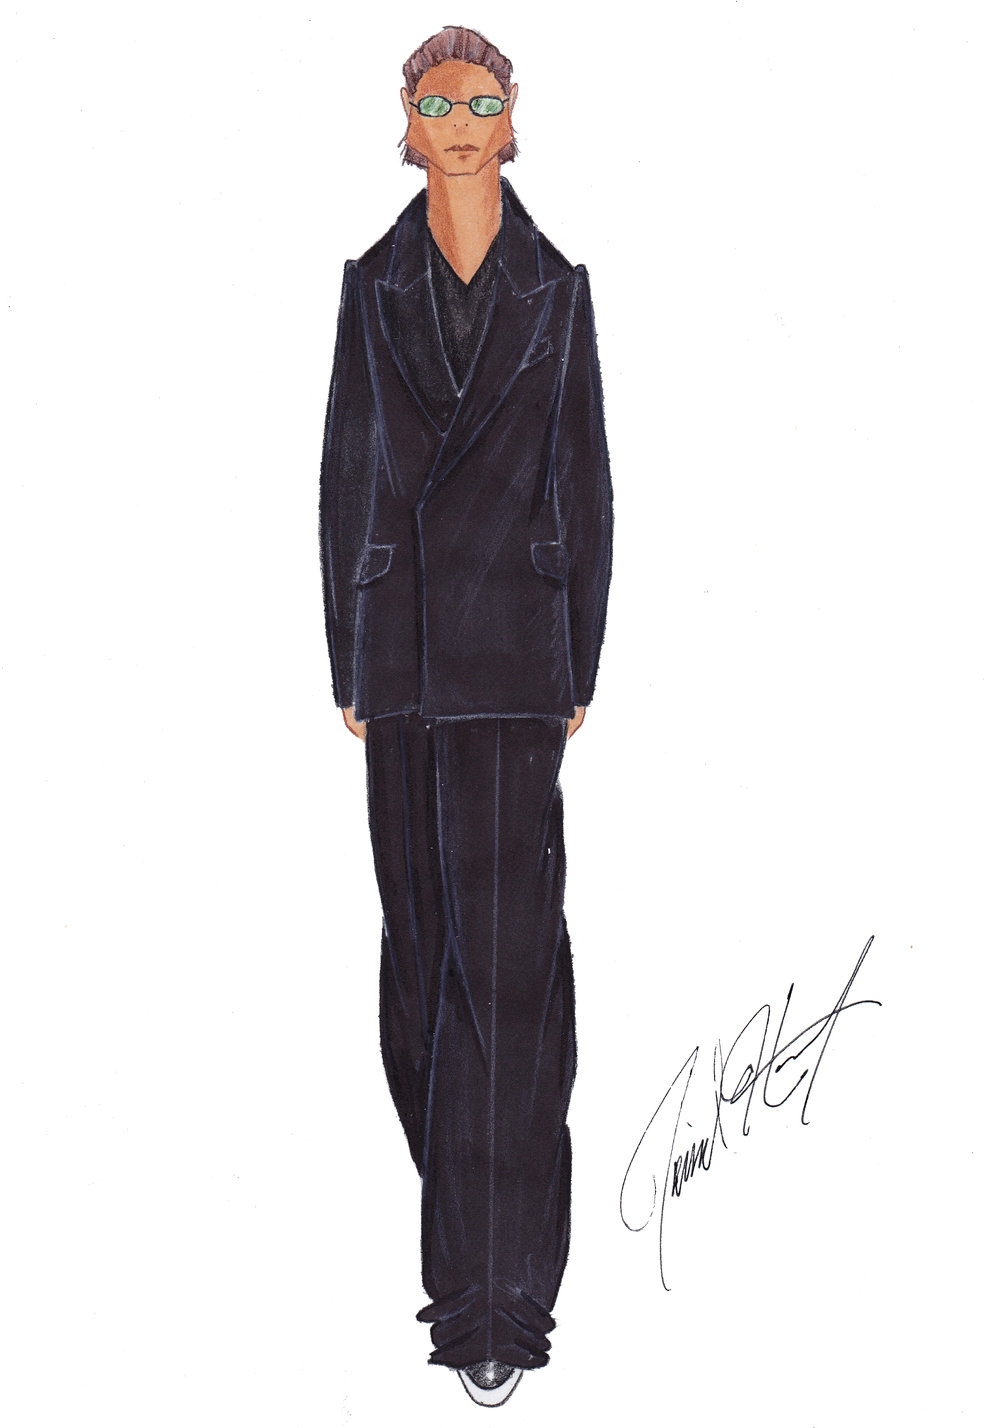 (Above): Sketch from David Hart's fall 2019 collection